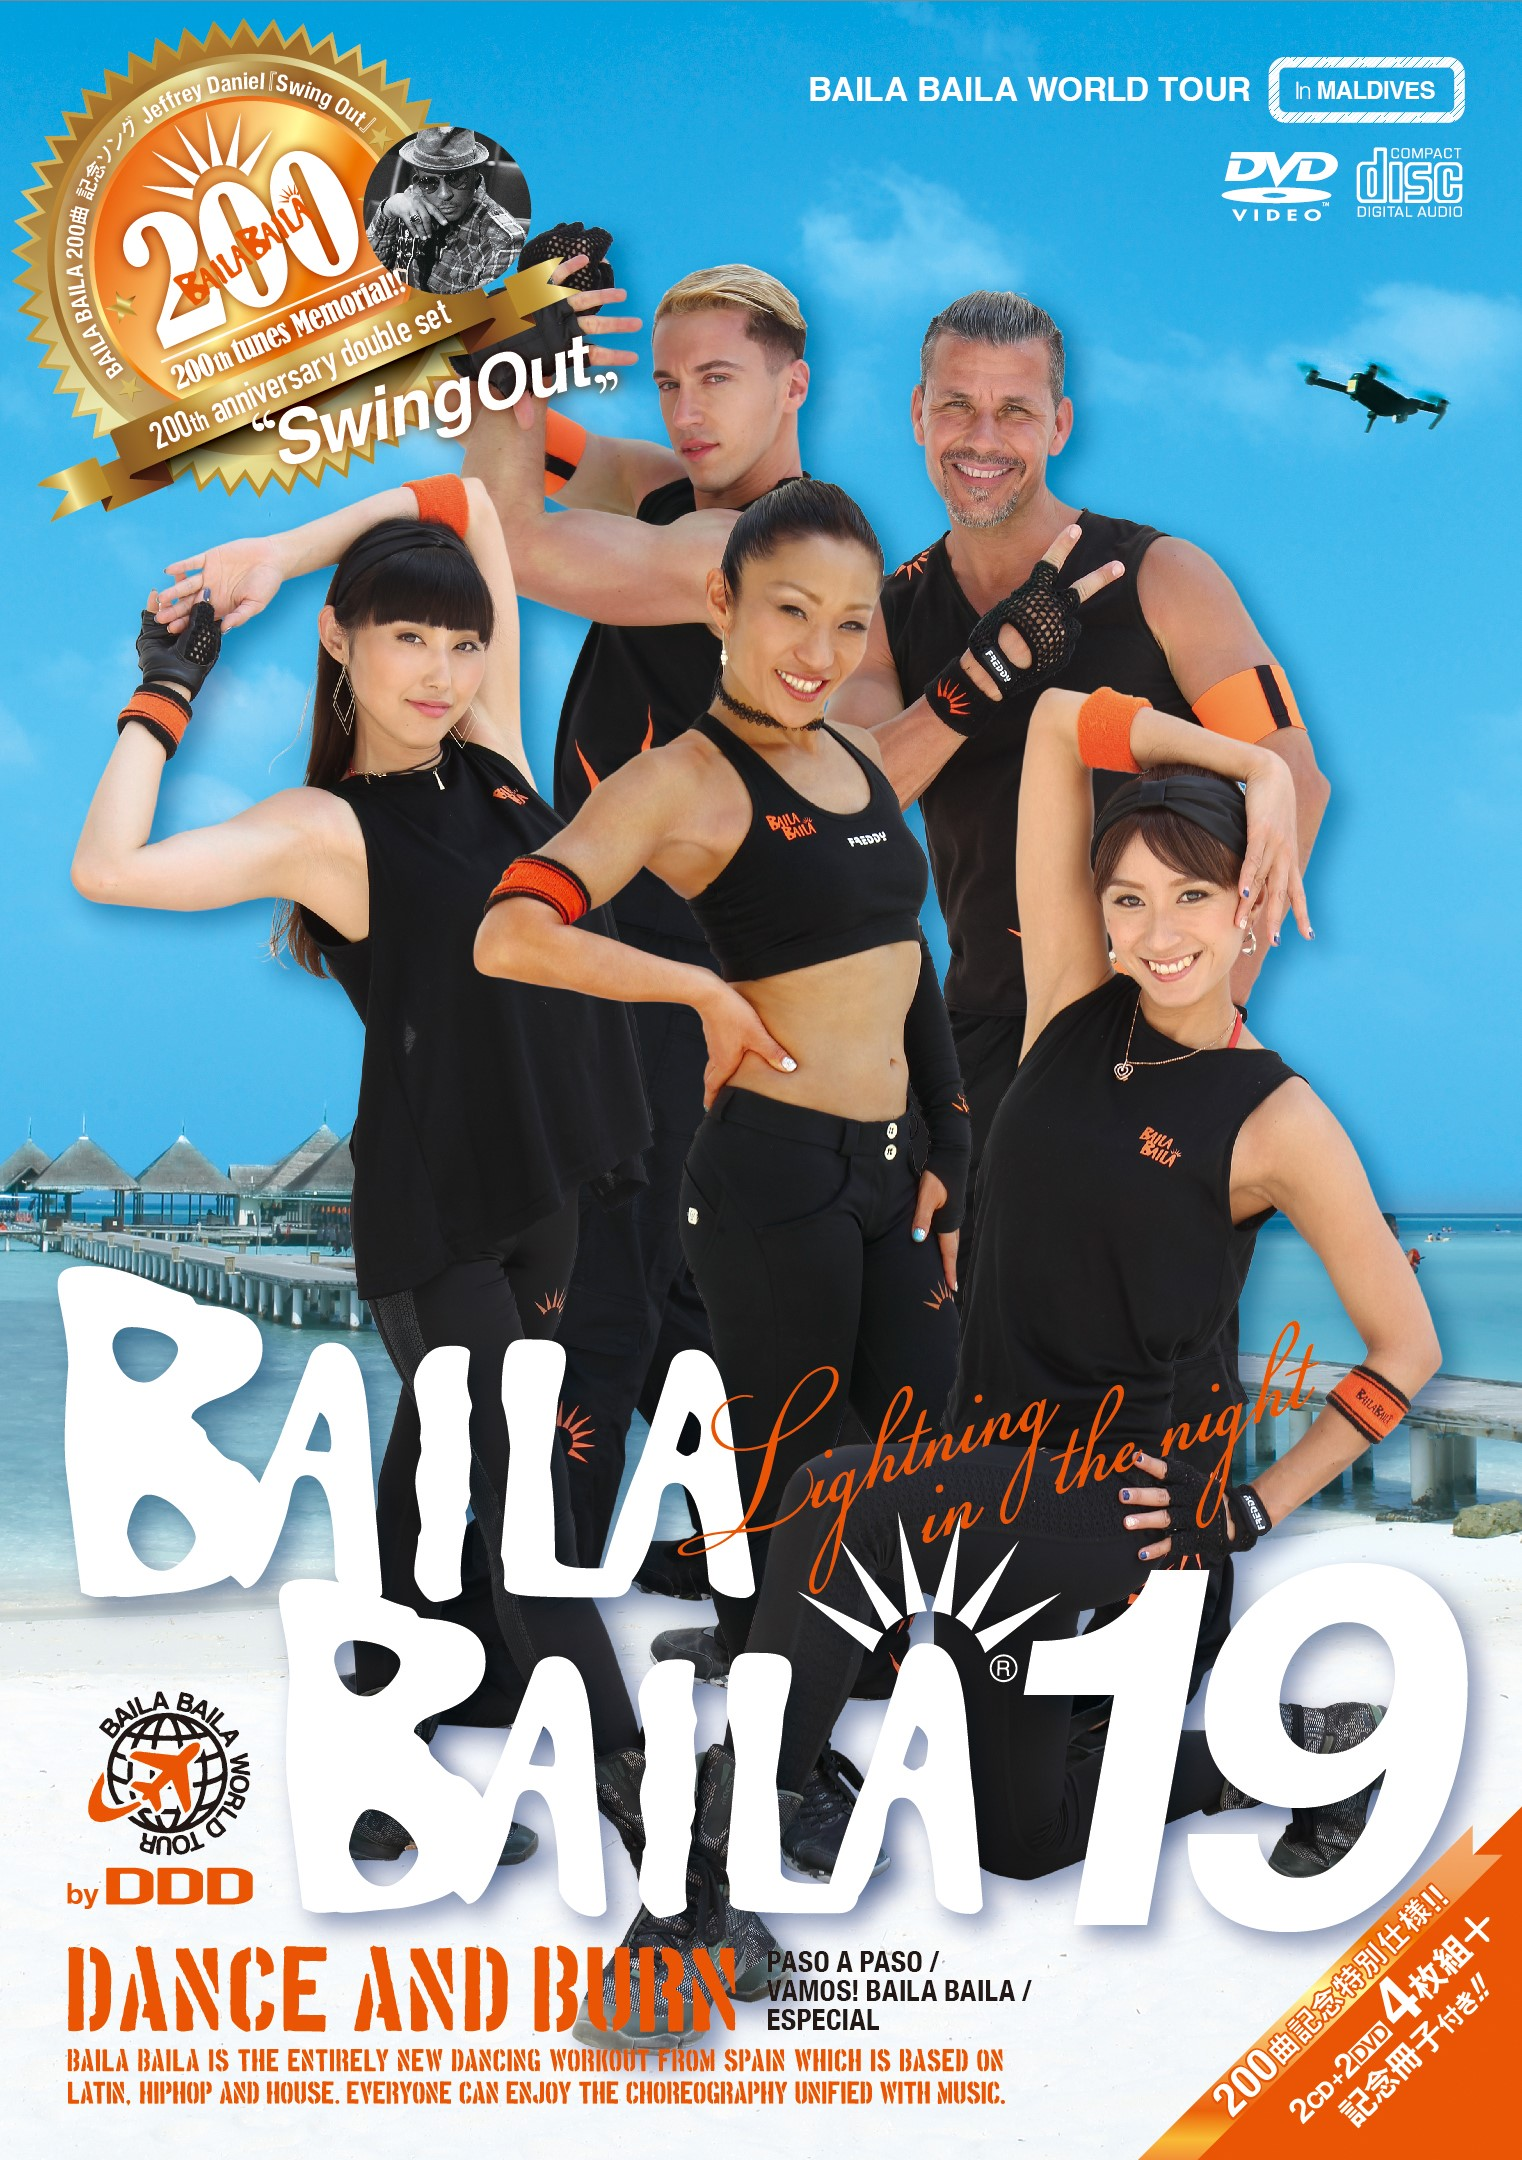 """BAILA BAILA vol.19 """" Lightning in the night""""/200th  memorial song  「Swing Out」by ジェフリーダニエル(Shalamar) ダブルセット CD+DVD 4枚組"""